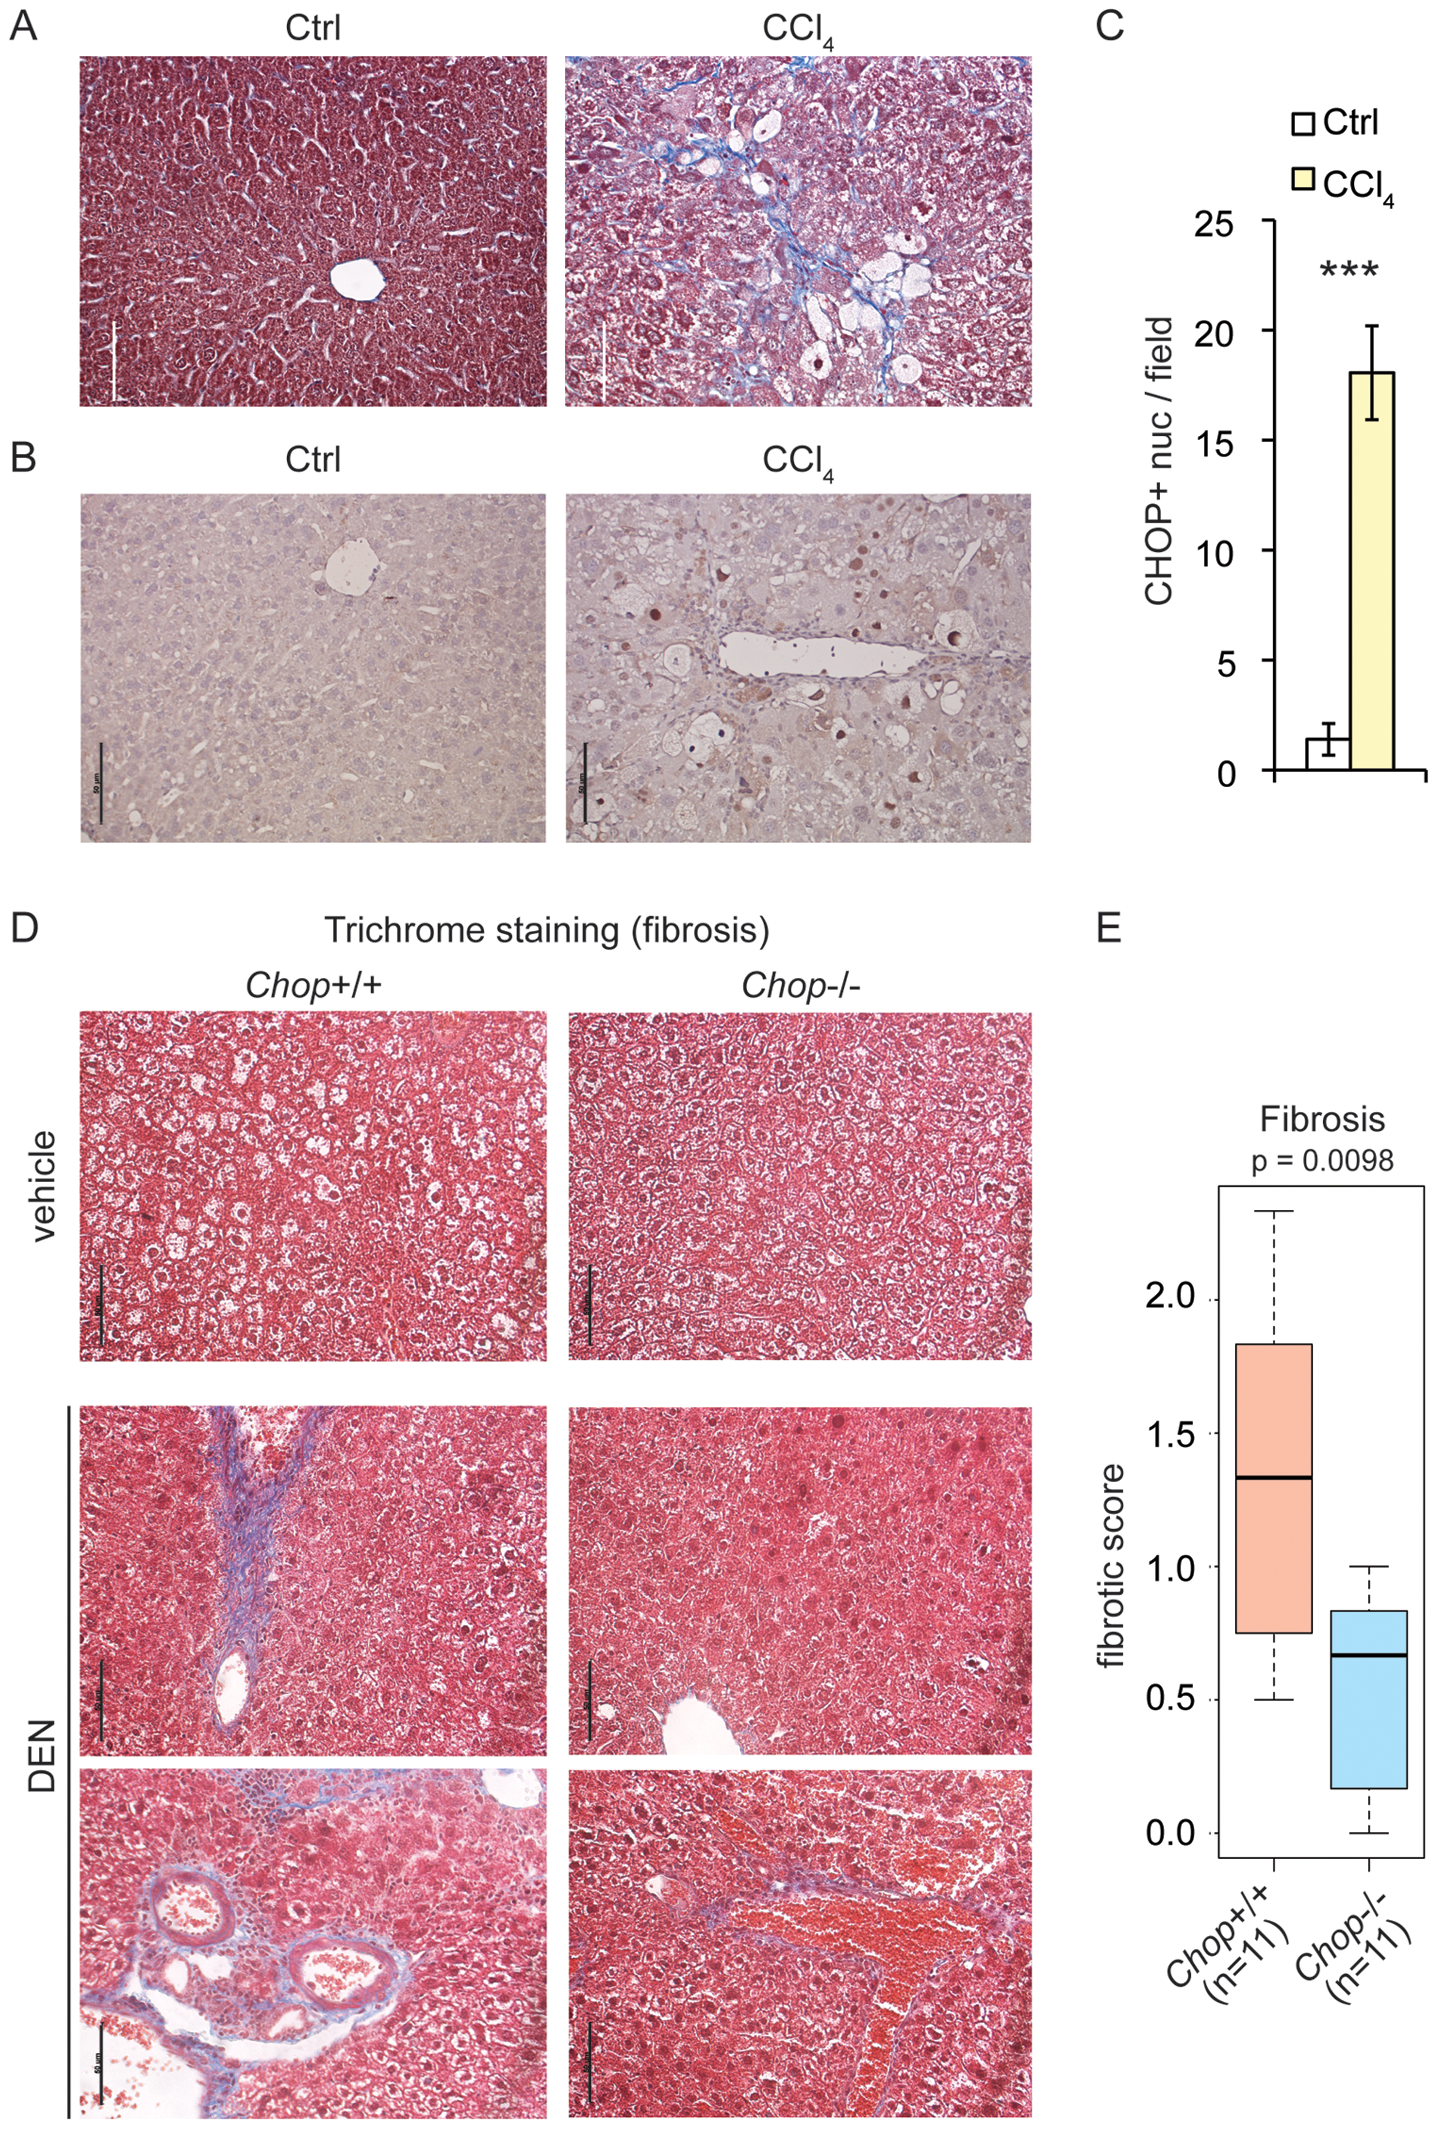 CHOP is induced by fibrotic insult and promotes fibrosis.